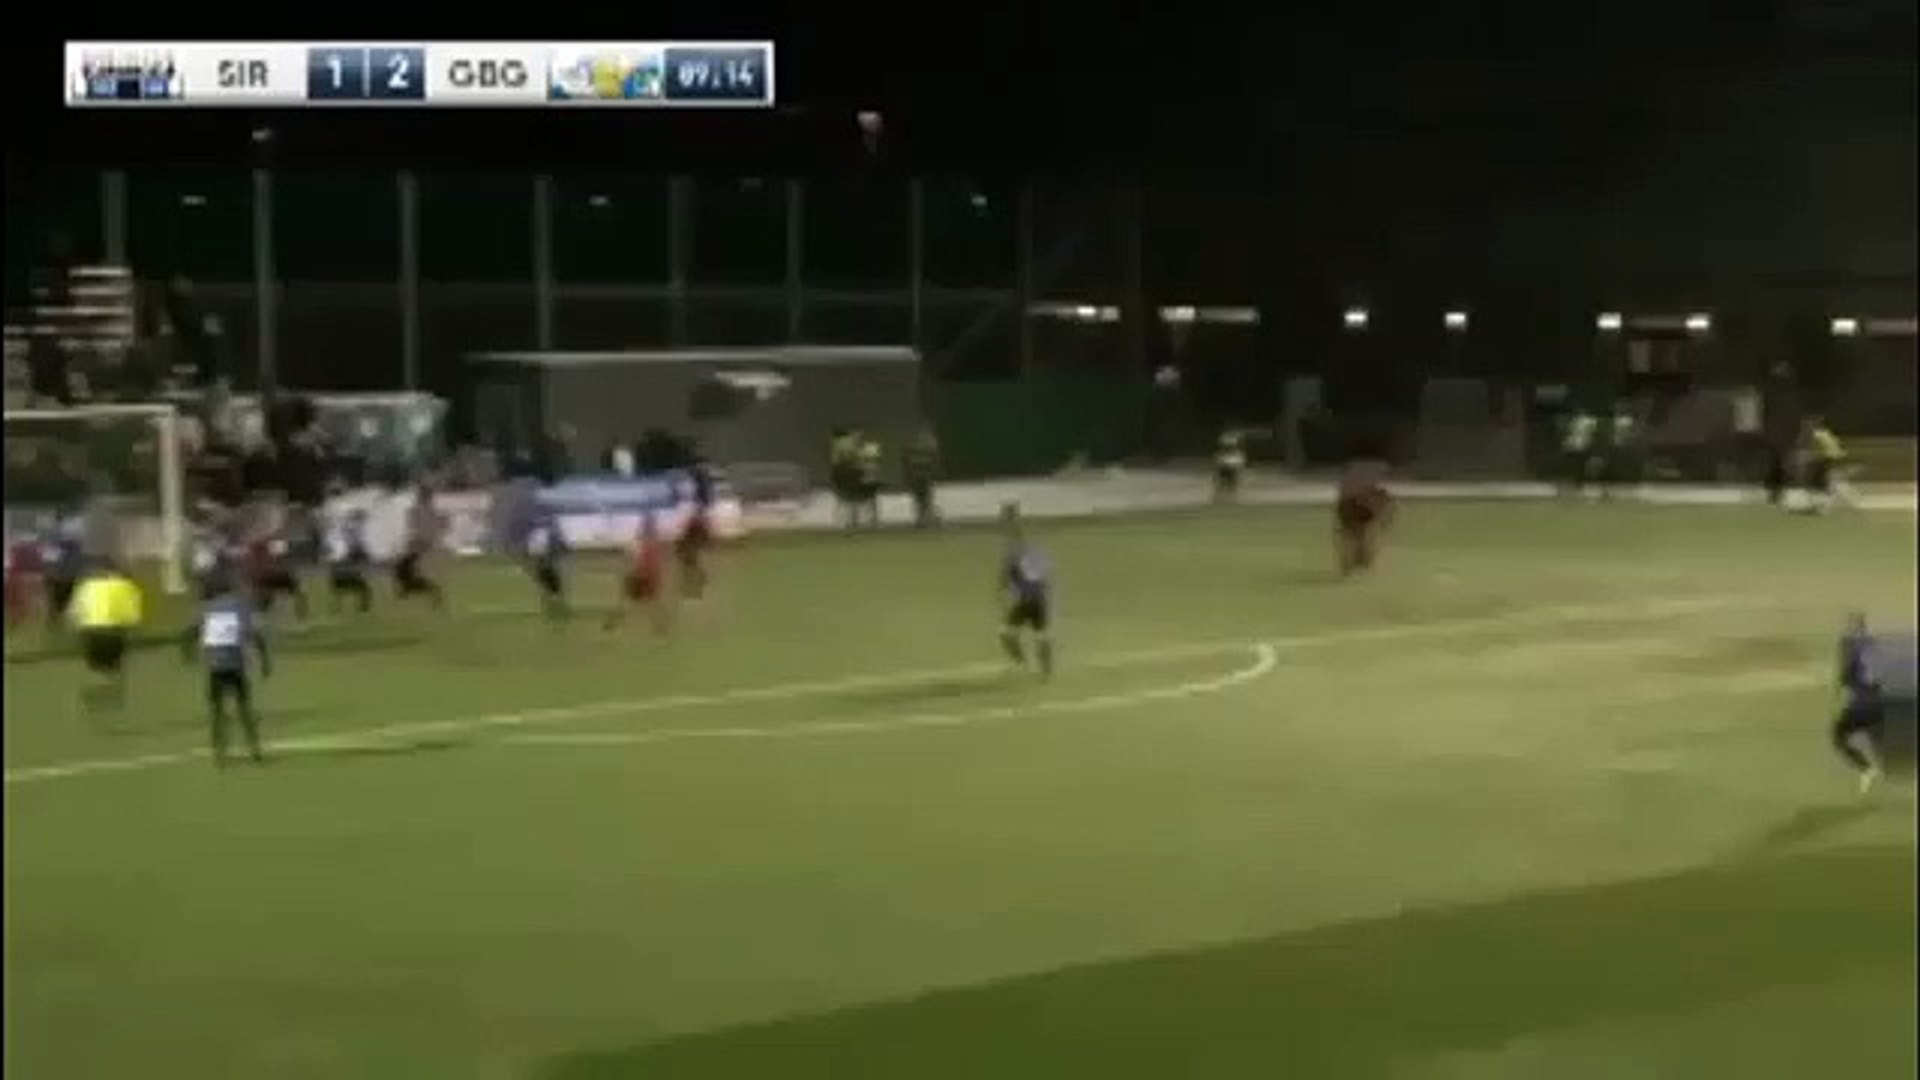 Sirius 2:2 Goeteborg (Sweden. Cup. 4 March 2018)